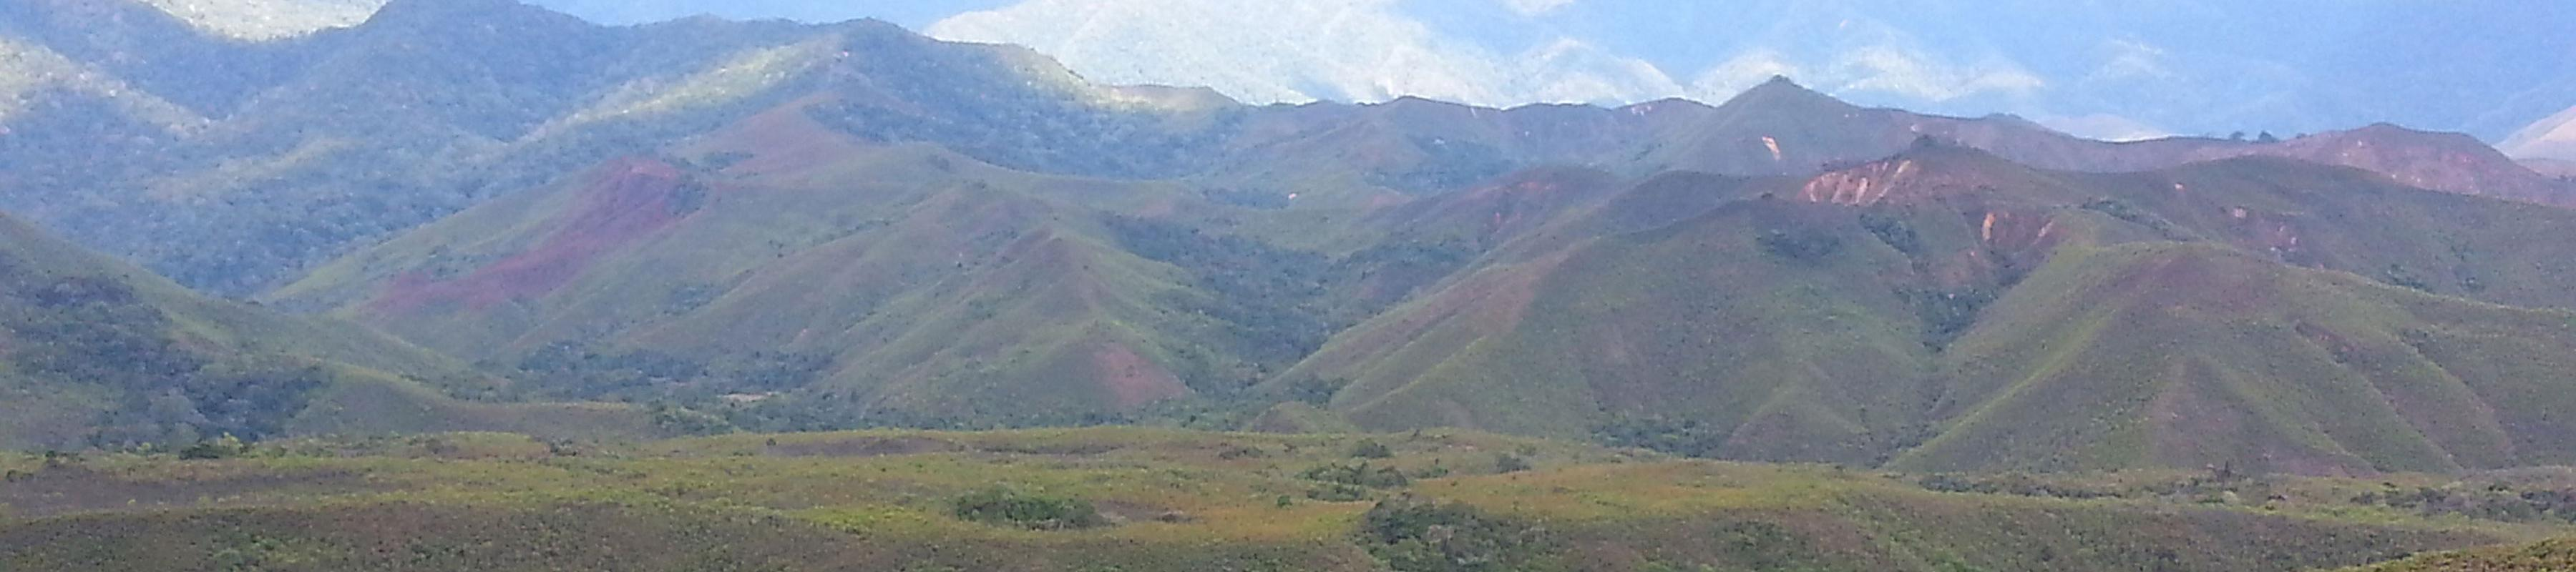 Mountain range in Madagascar